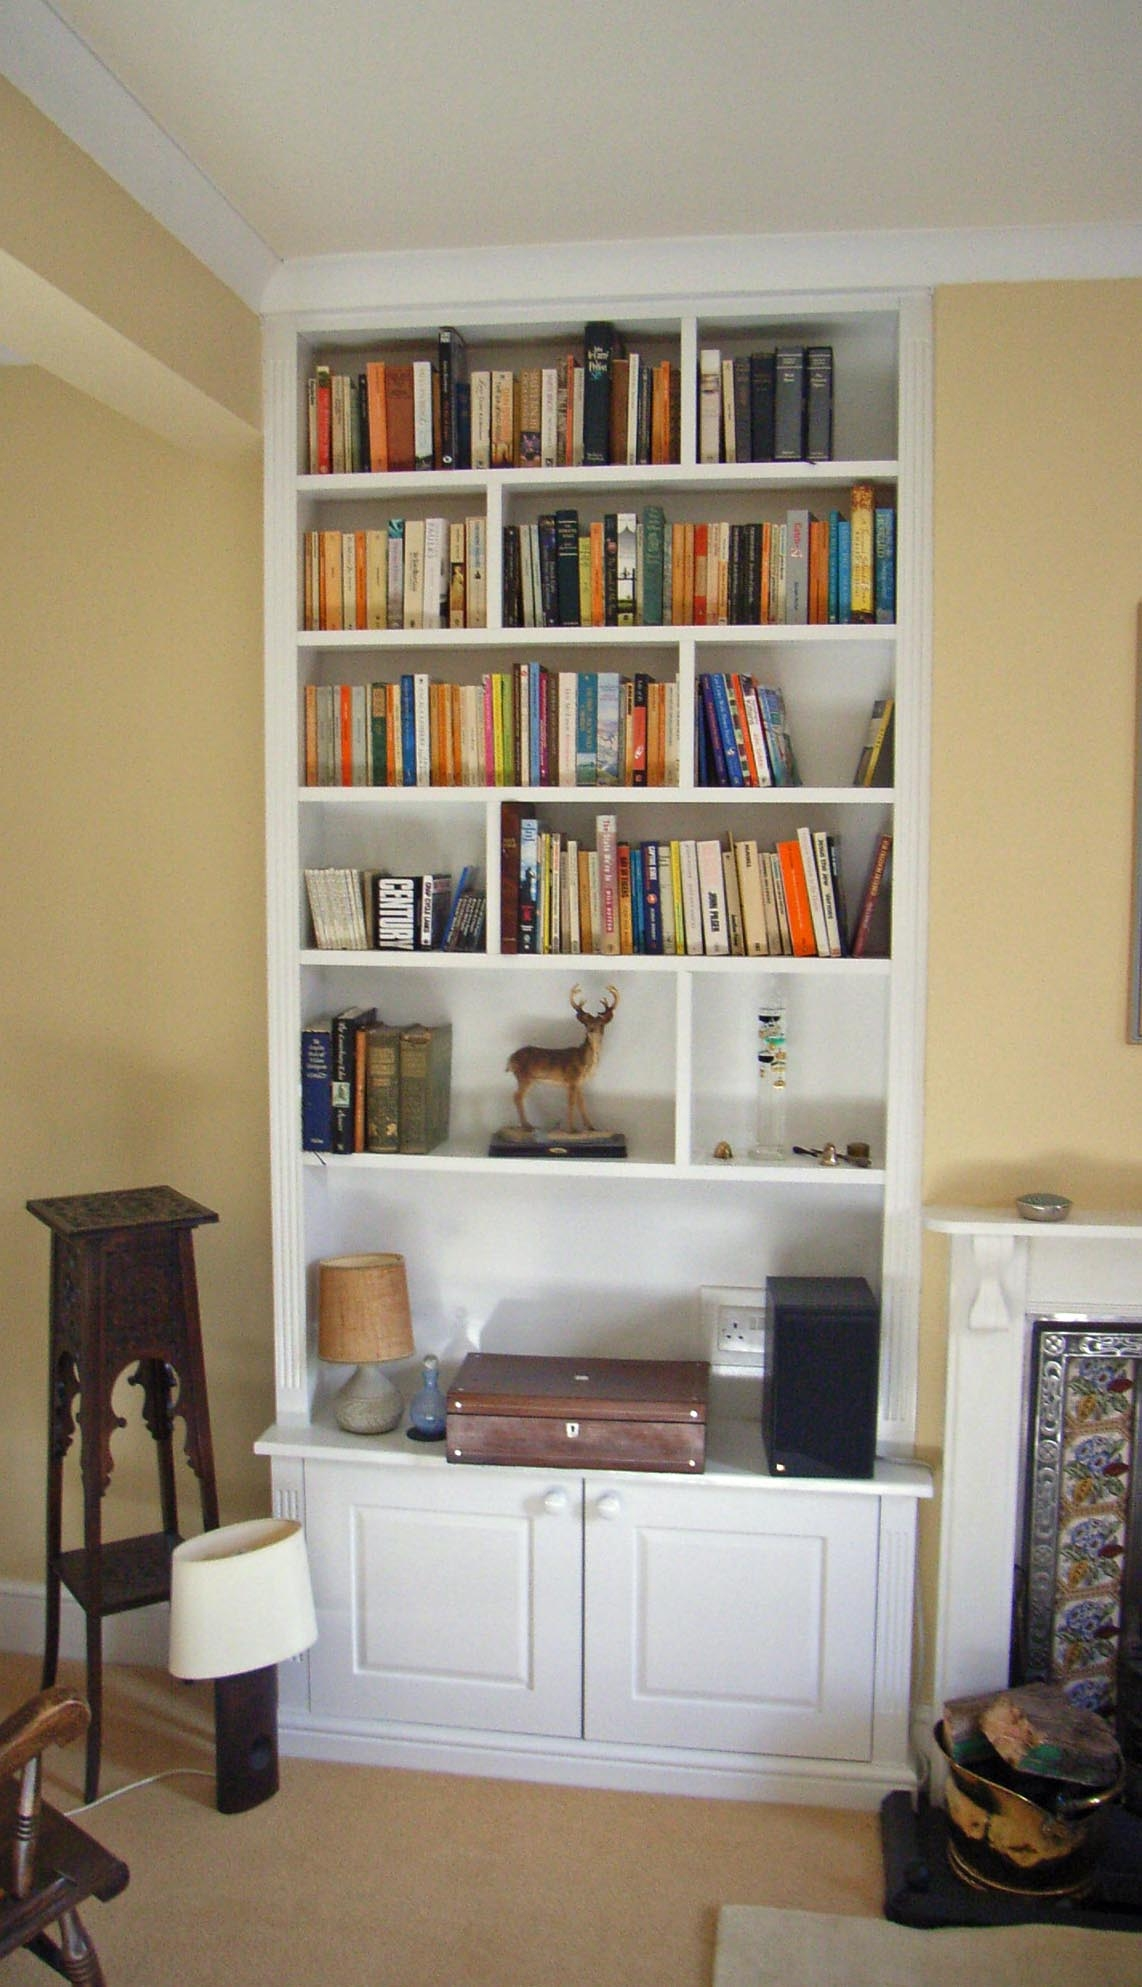 Av Unit With Lit Alcove Shelving Alcove Pinterest Alcove Intended For Bespoke Shelving Units (View 4 of 15)